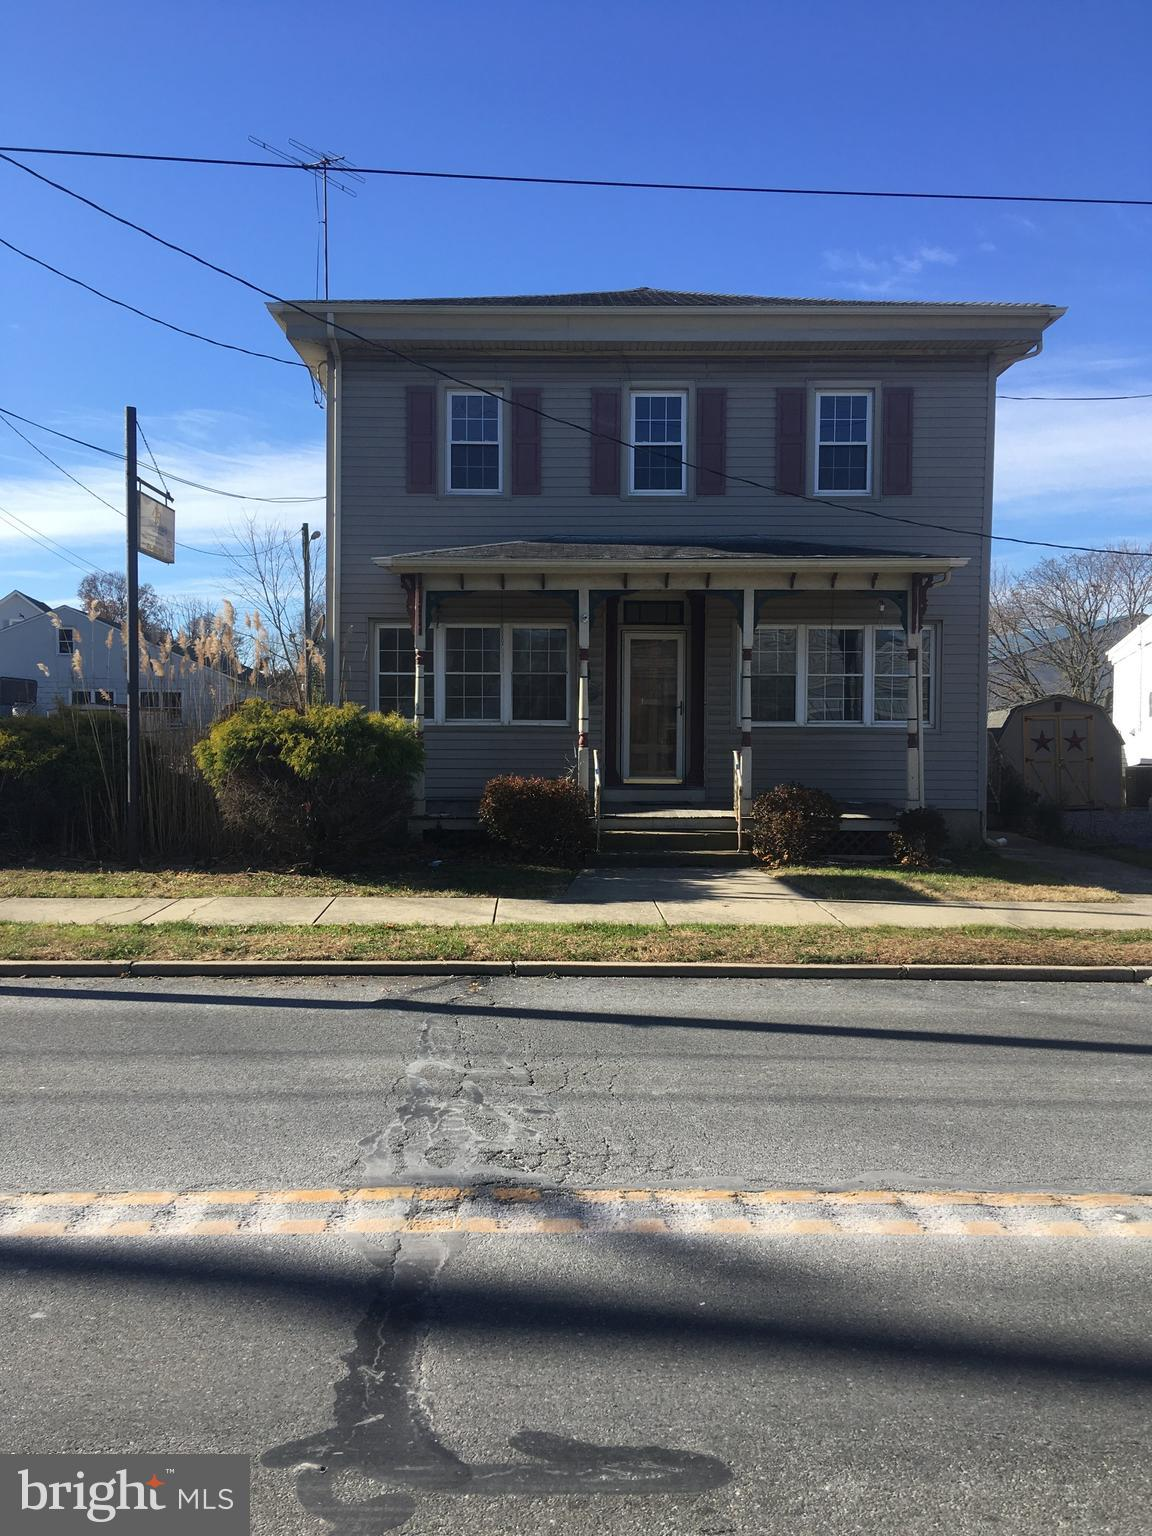 31 MAIN STREET, SALEM, NJ 08072